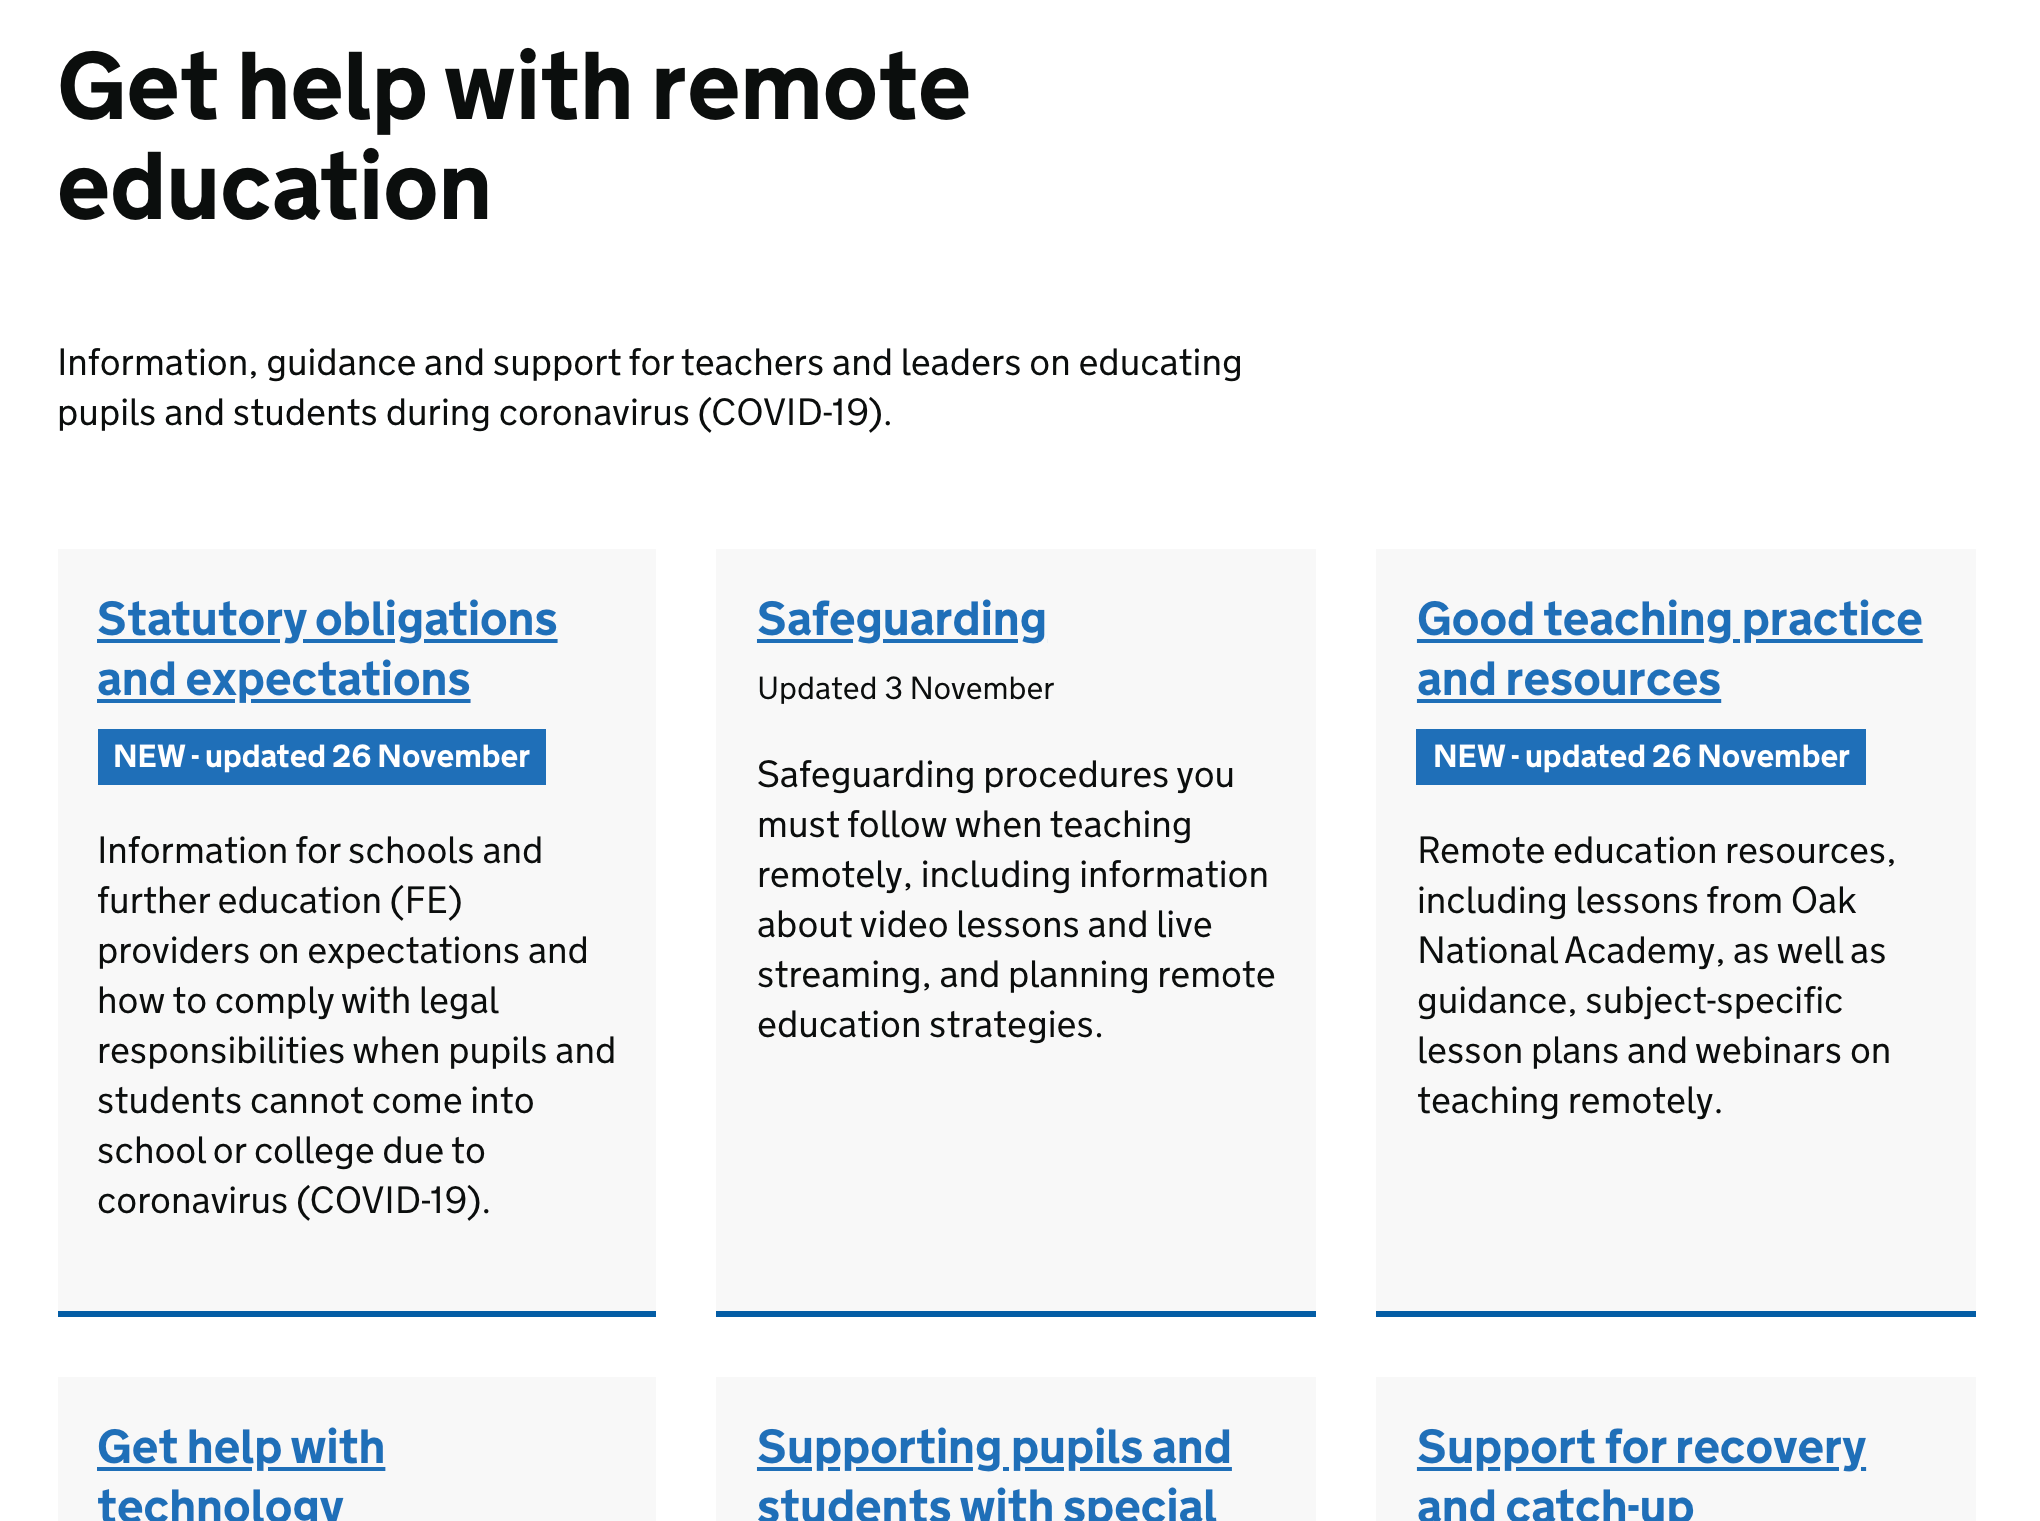 Get-help-with-remote-education_updates--1